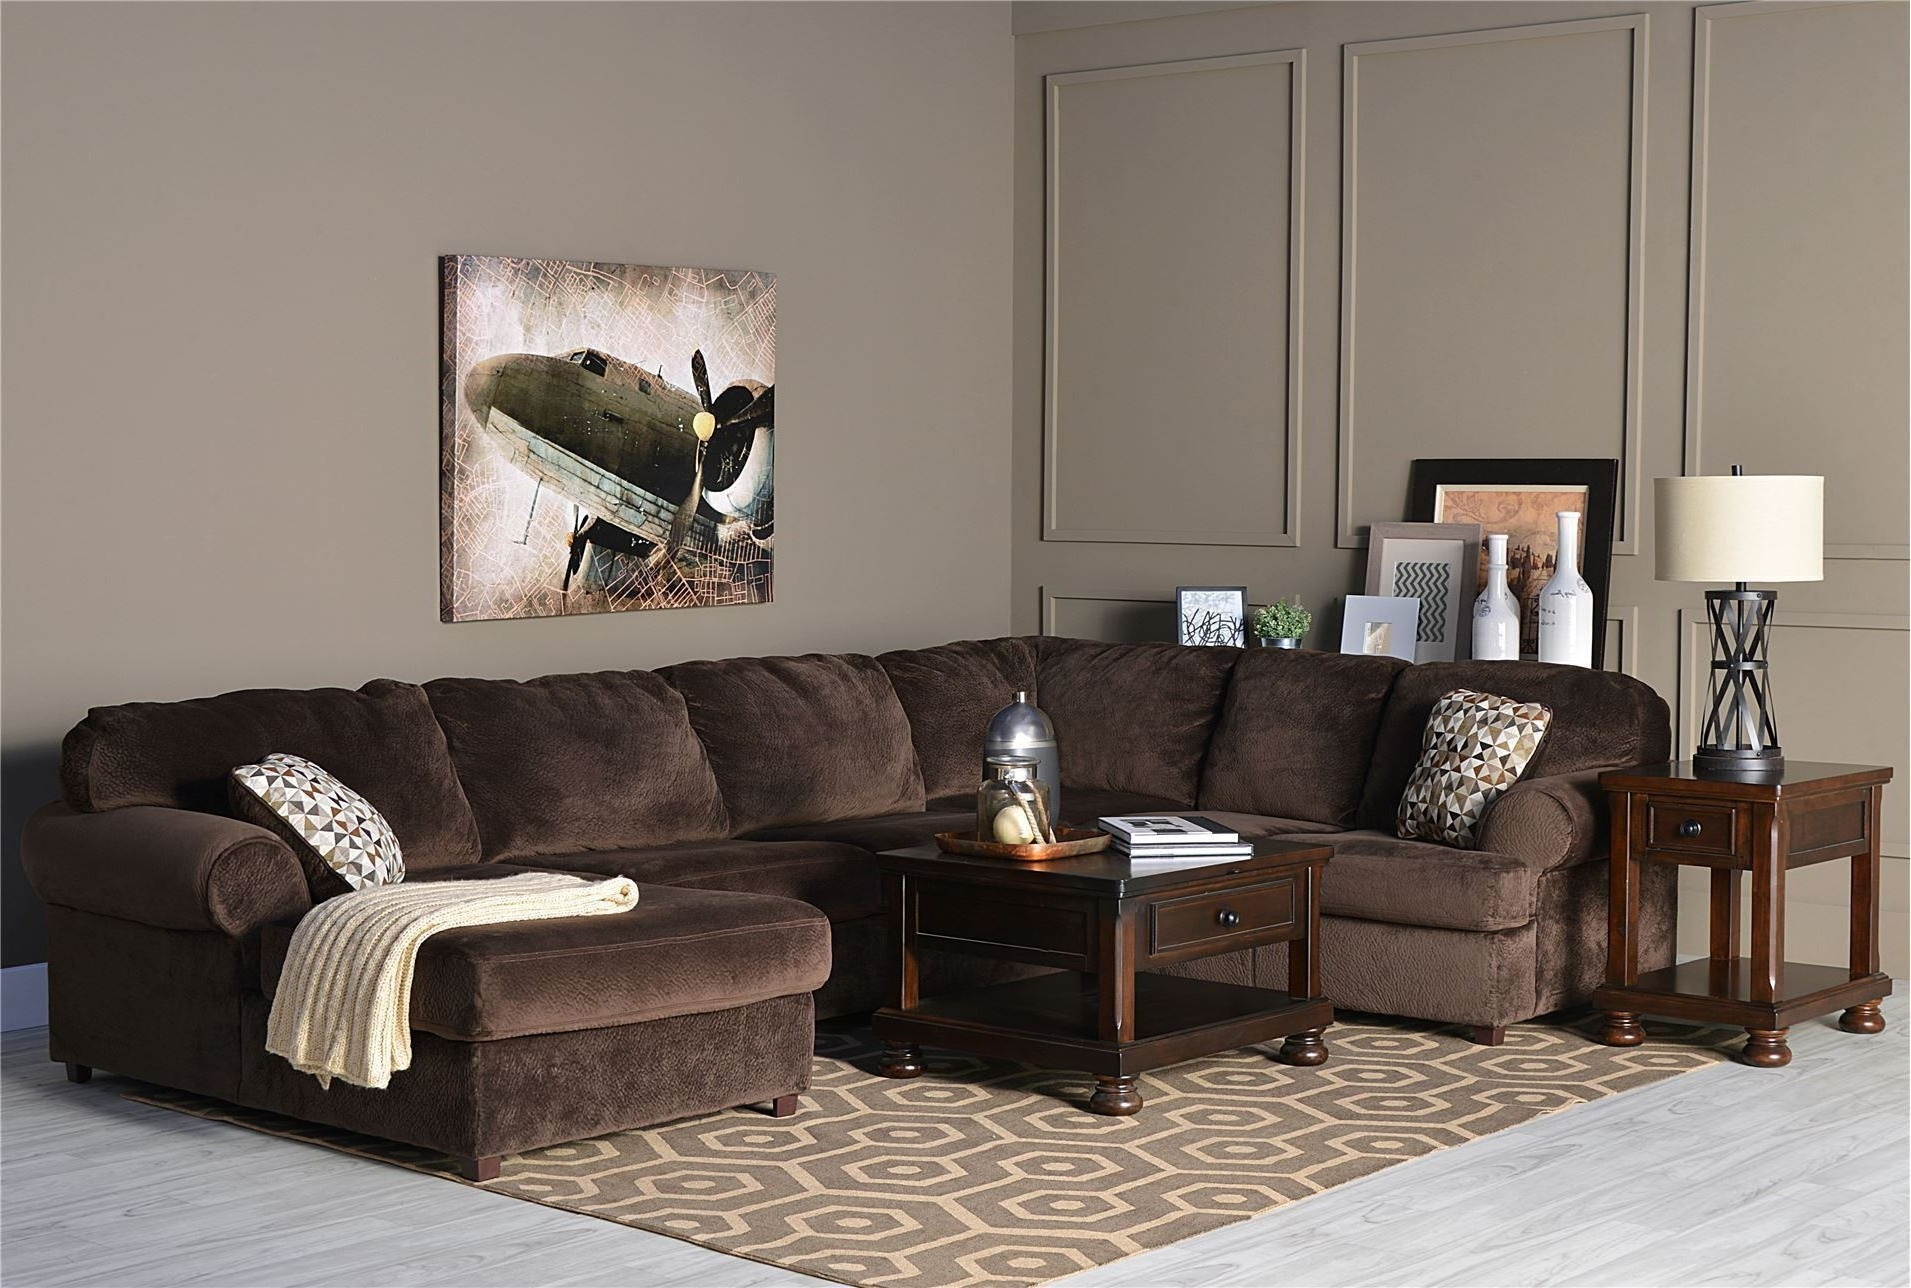 Most Popular Sofa: 3 Piece Sectional Sofa. Small Couch With Chaise (View 14 of 15)